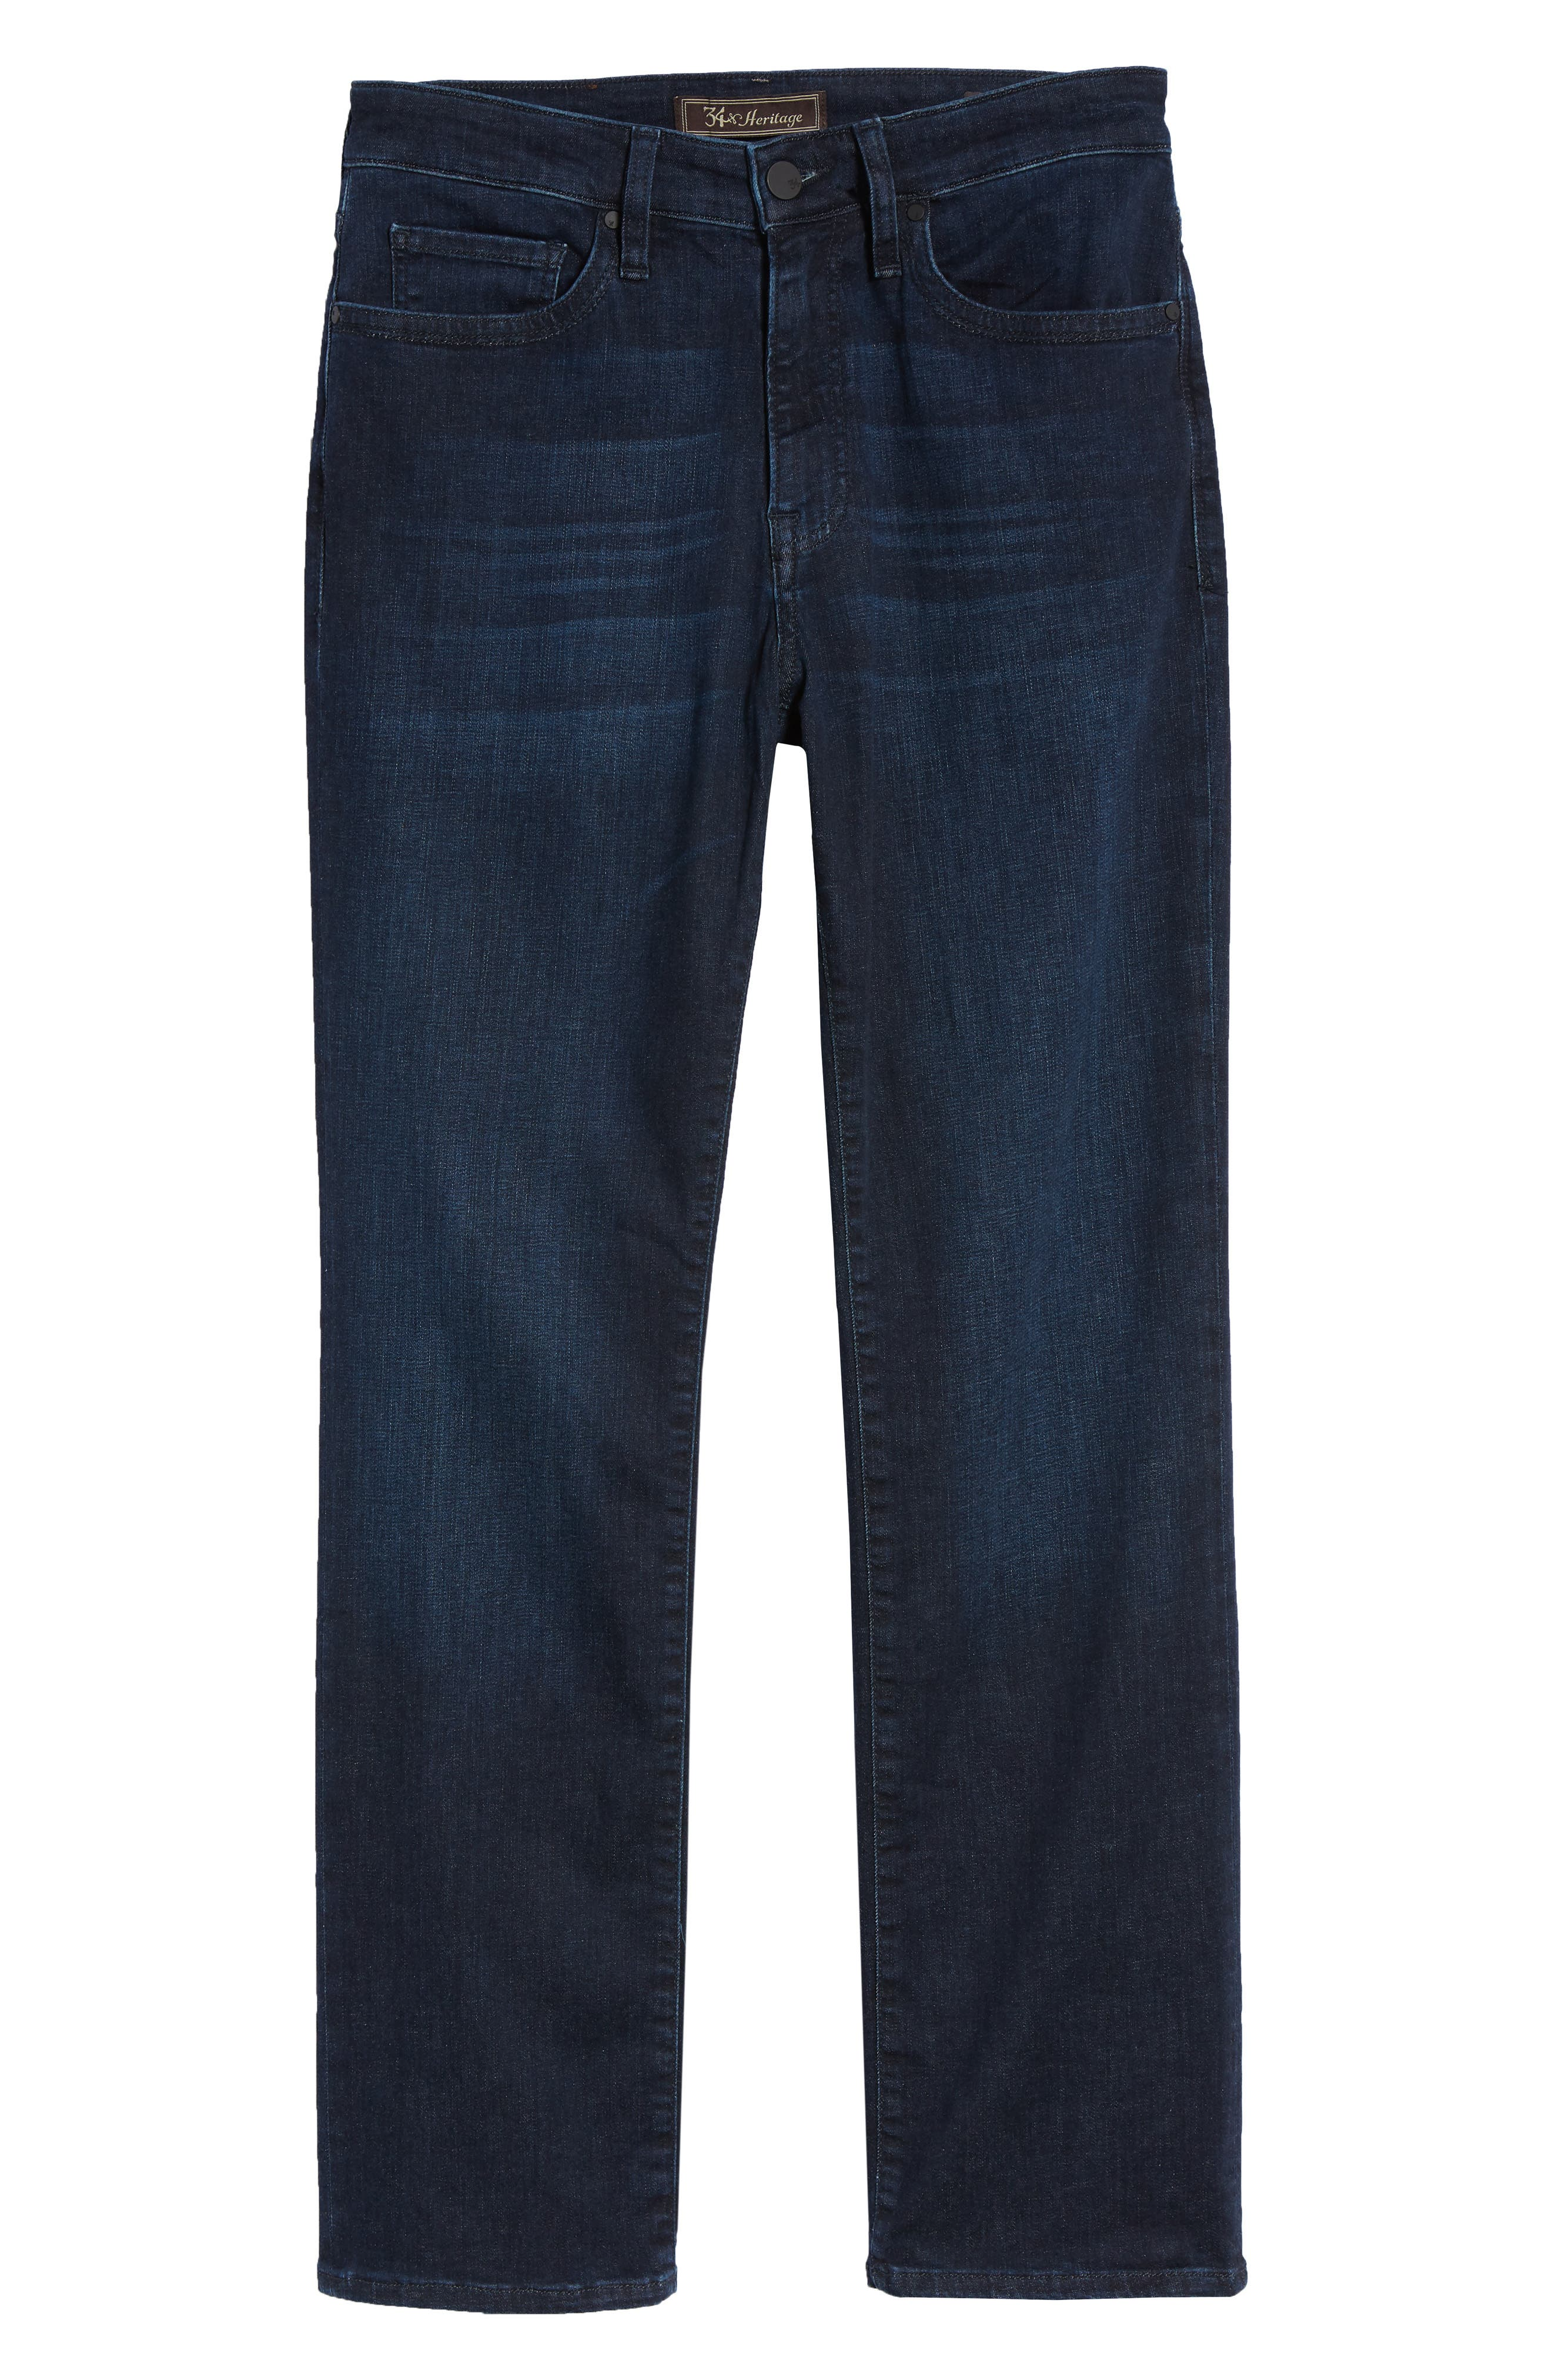 Charisma Relaxed Fit Jeans,                             Alternate thumbnail 6, color,                             Dark Milan